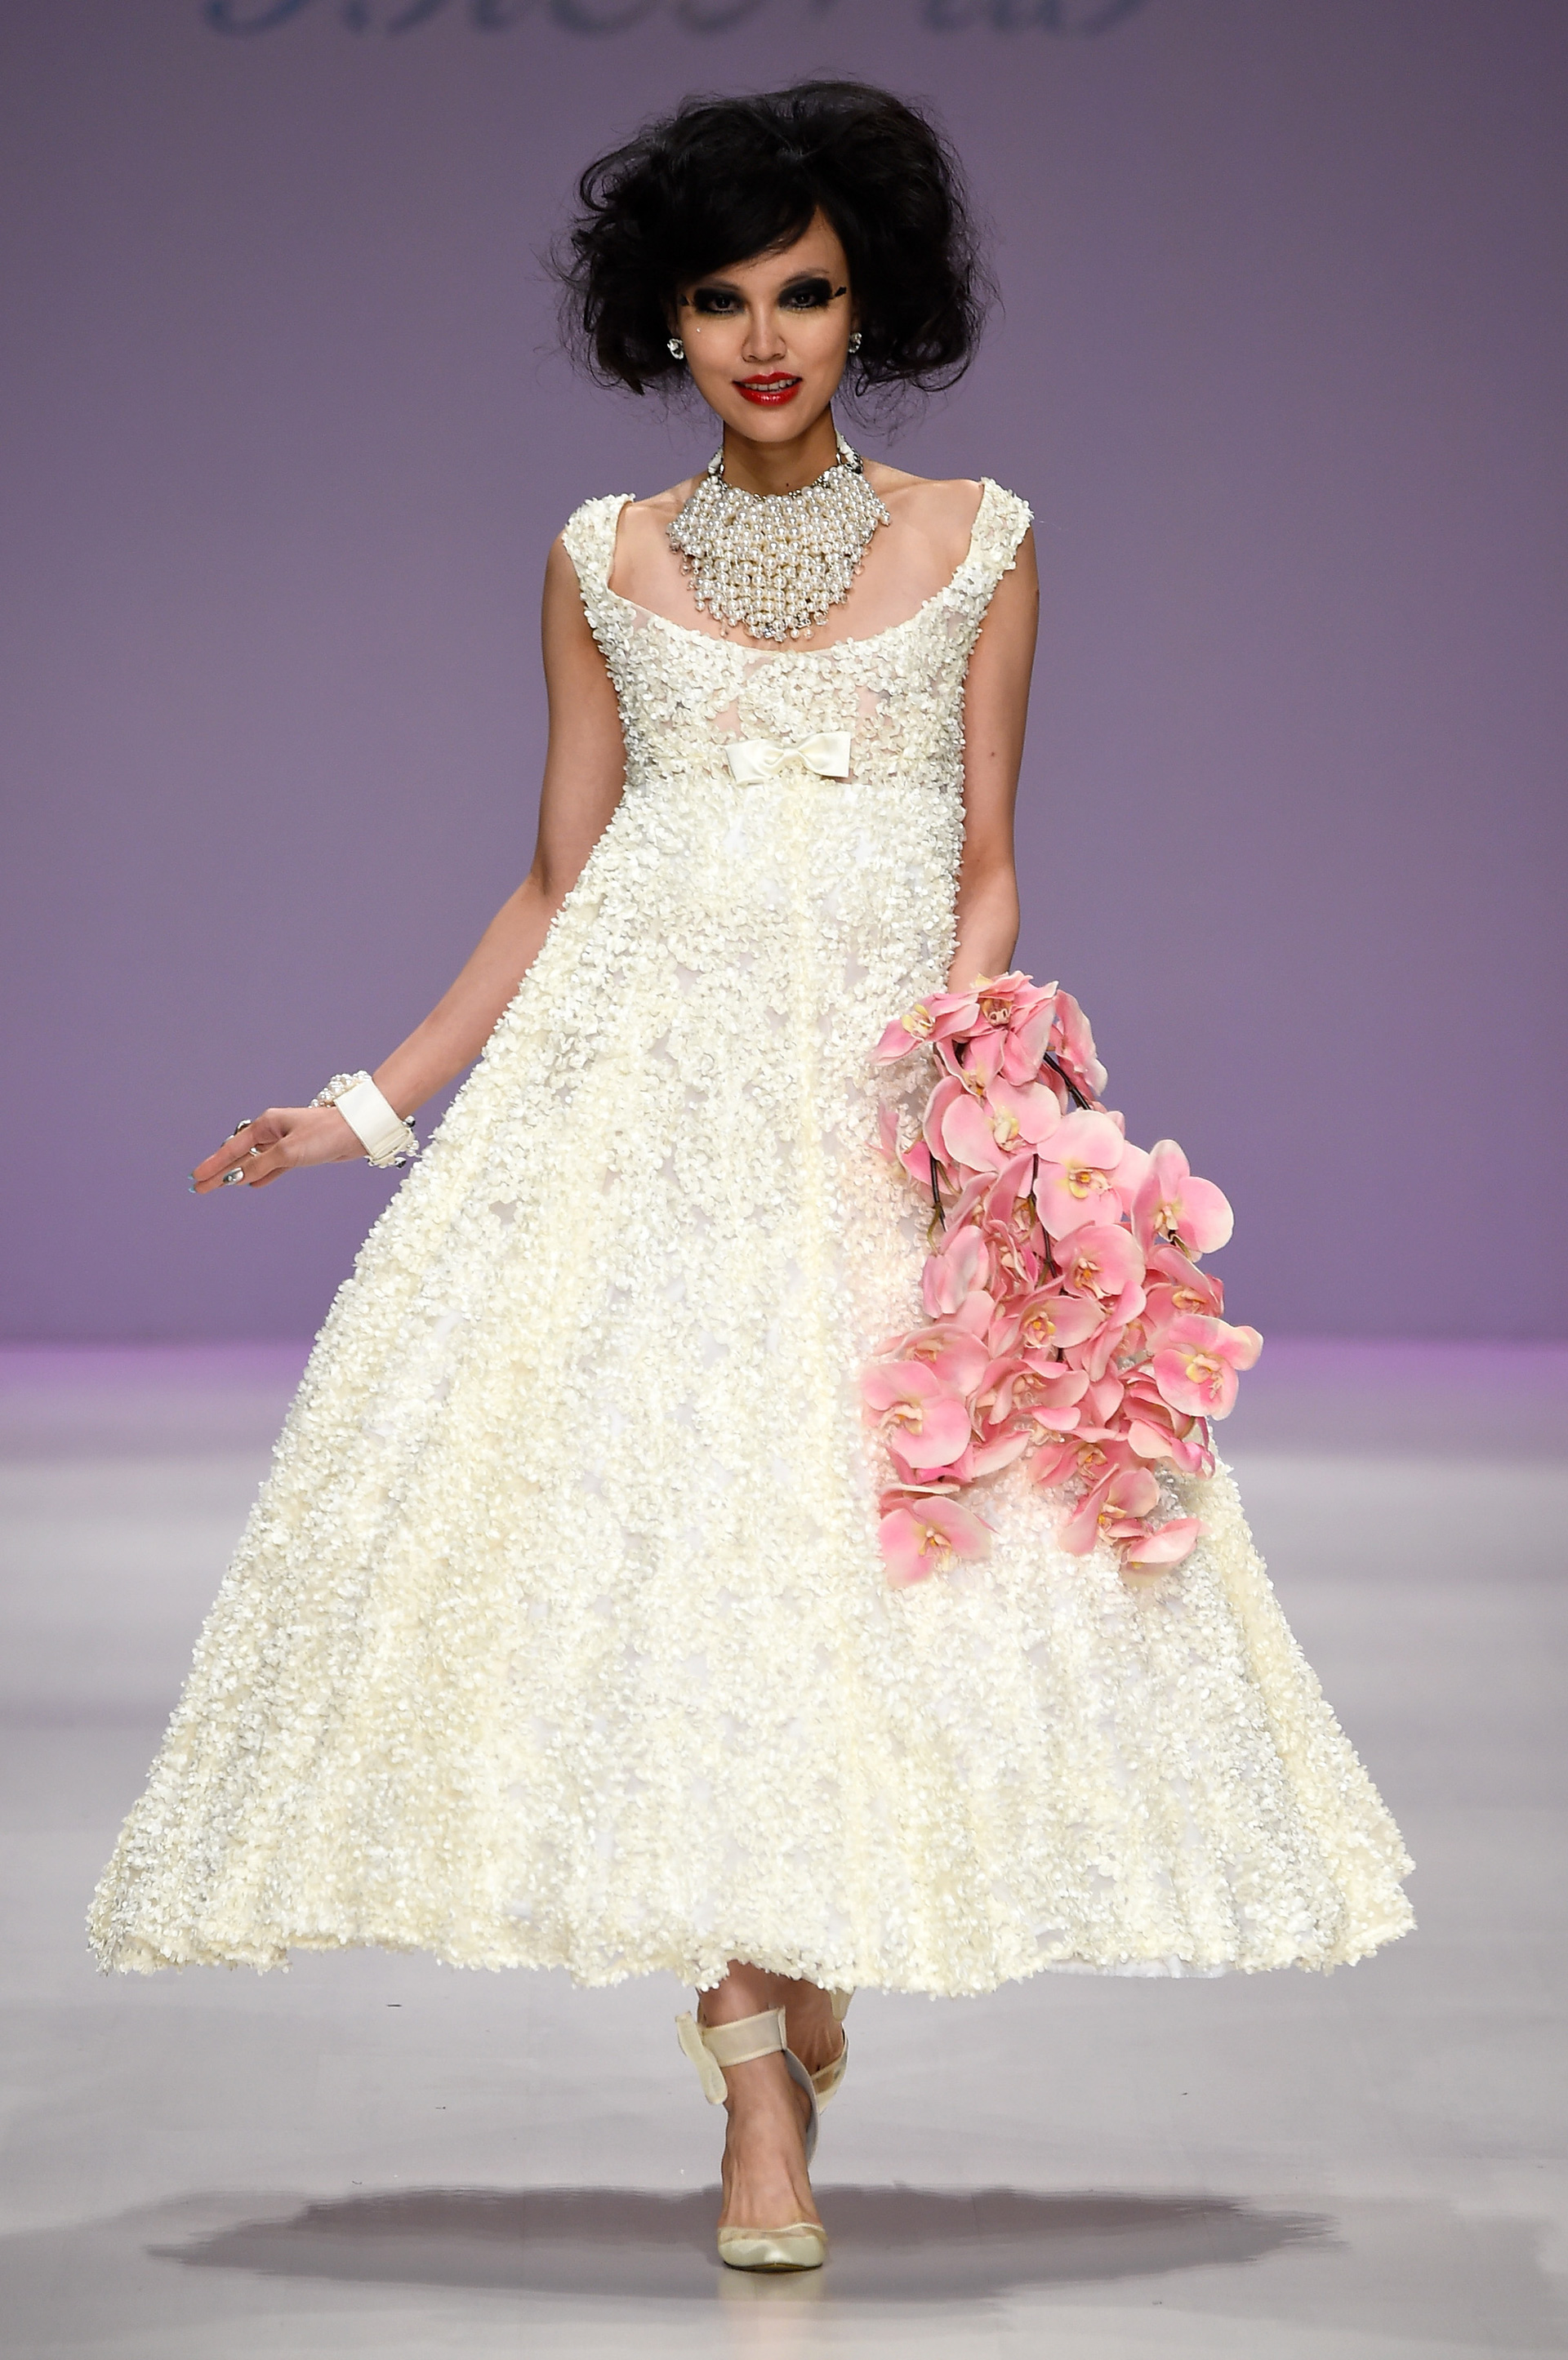 Betsey Johnson Celebrates ALL Brides!!!